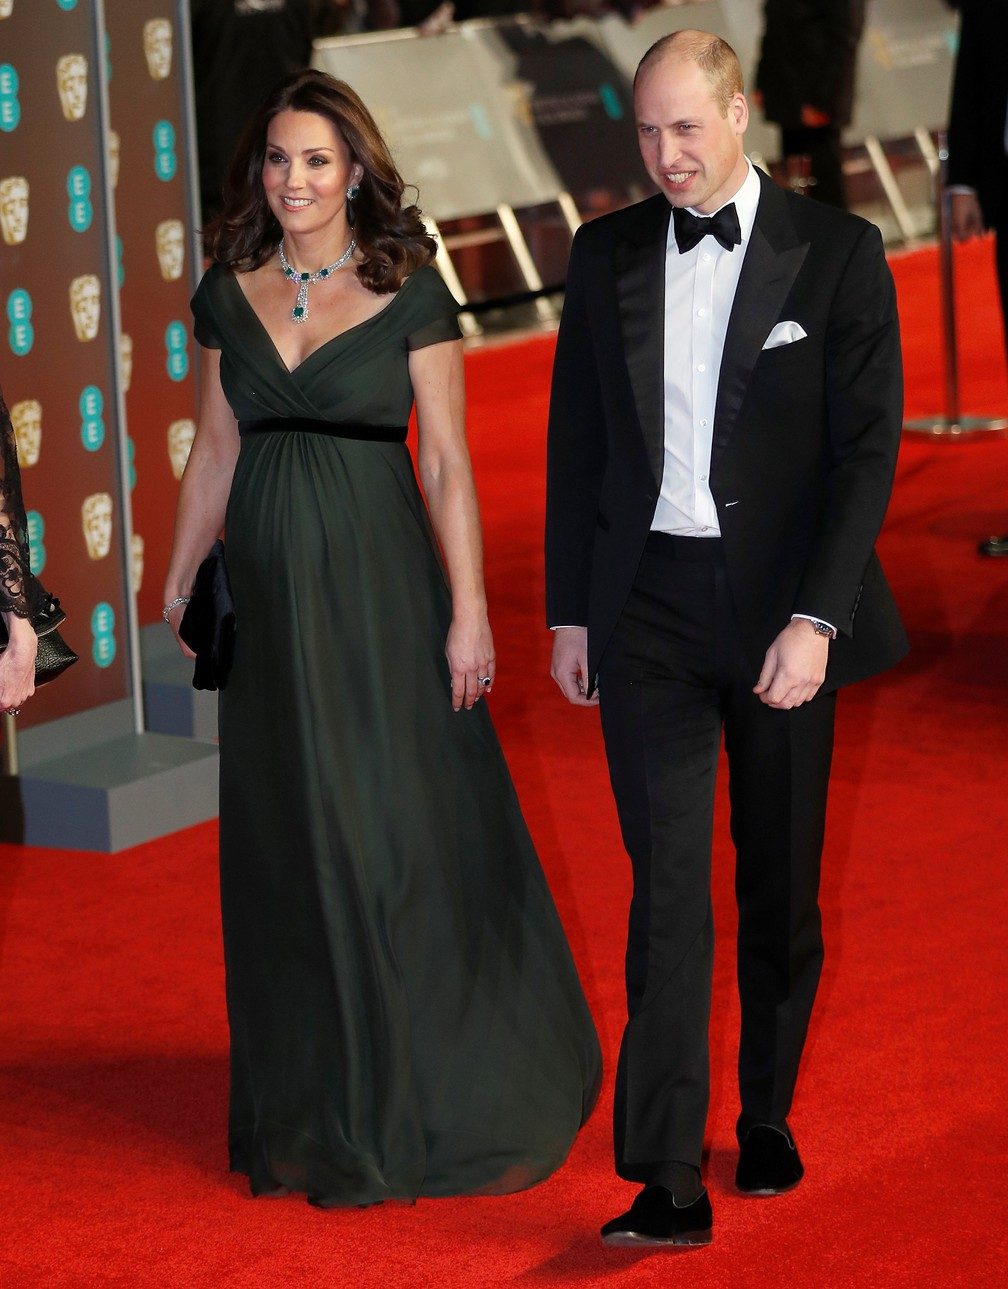 Kate Middleton e o príncipe William chegam no tapete vermelho do Bafta — Foto: Peter Nicholls/Reuters